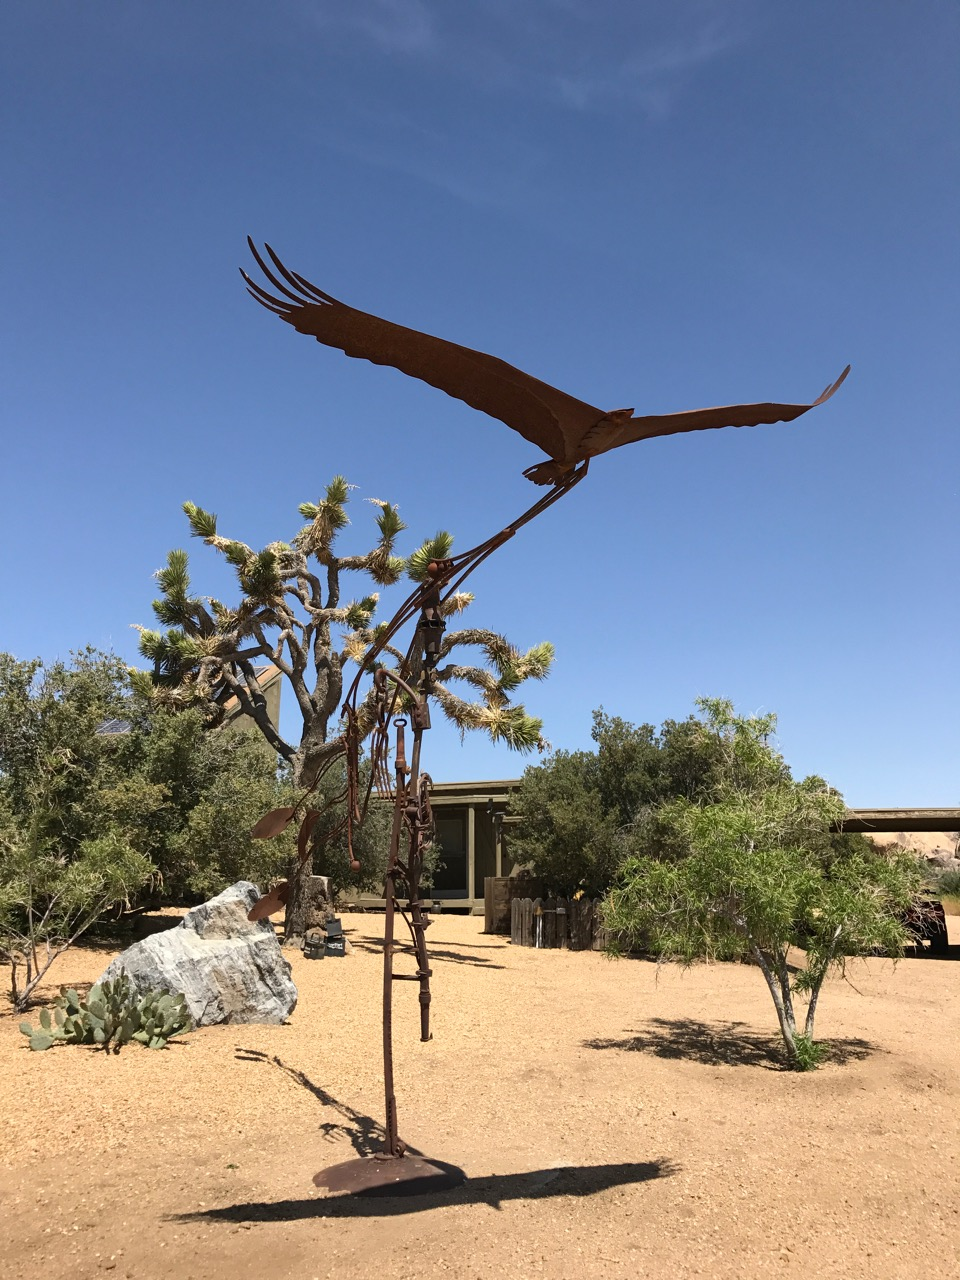 Alvarez-Byrd_bird_sculpture_and_Joshua_tree.jpg